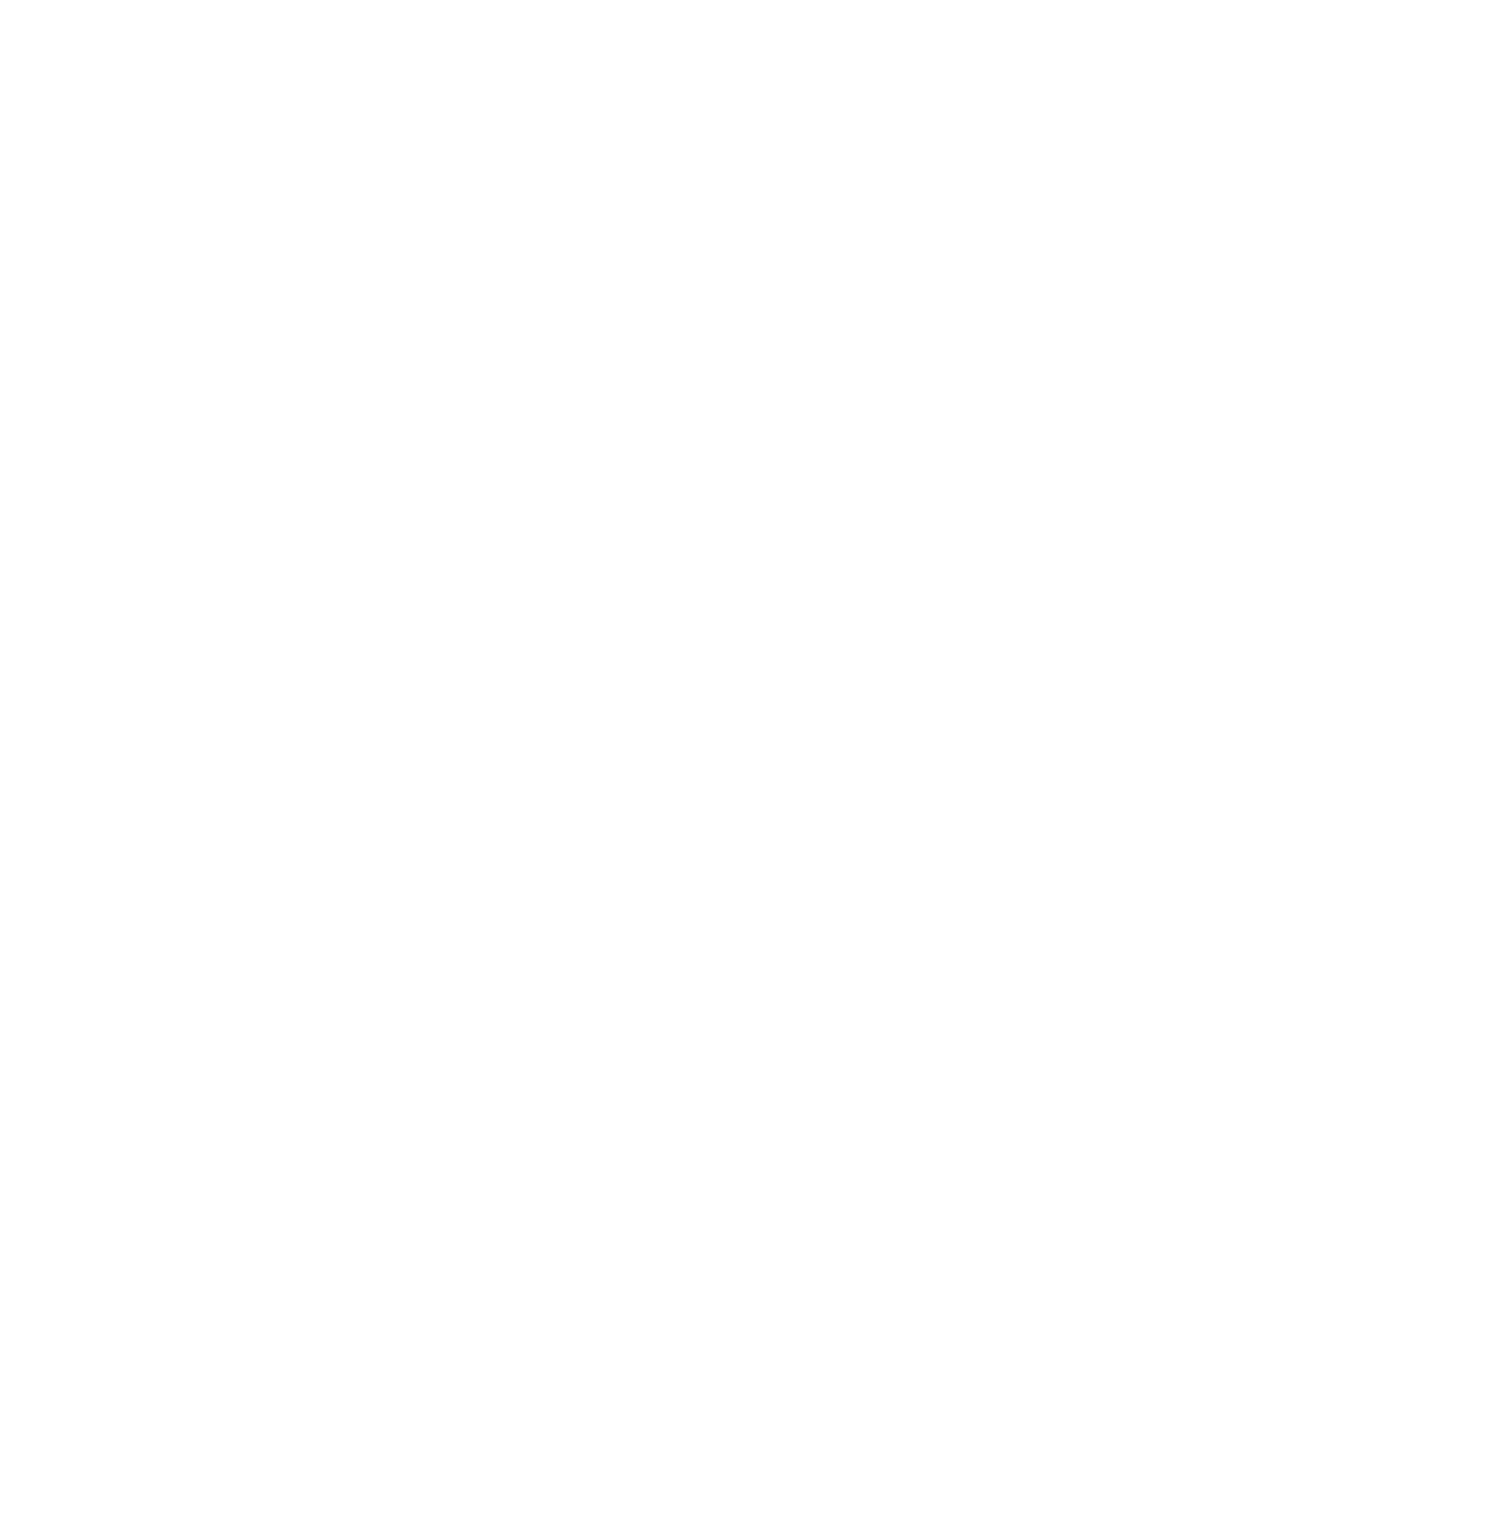 Kingdom Living Ministries